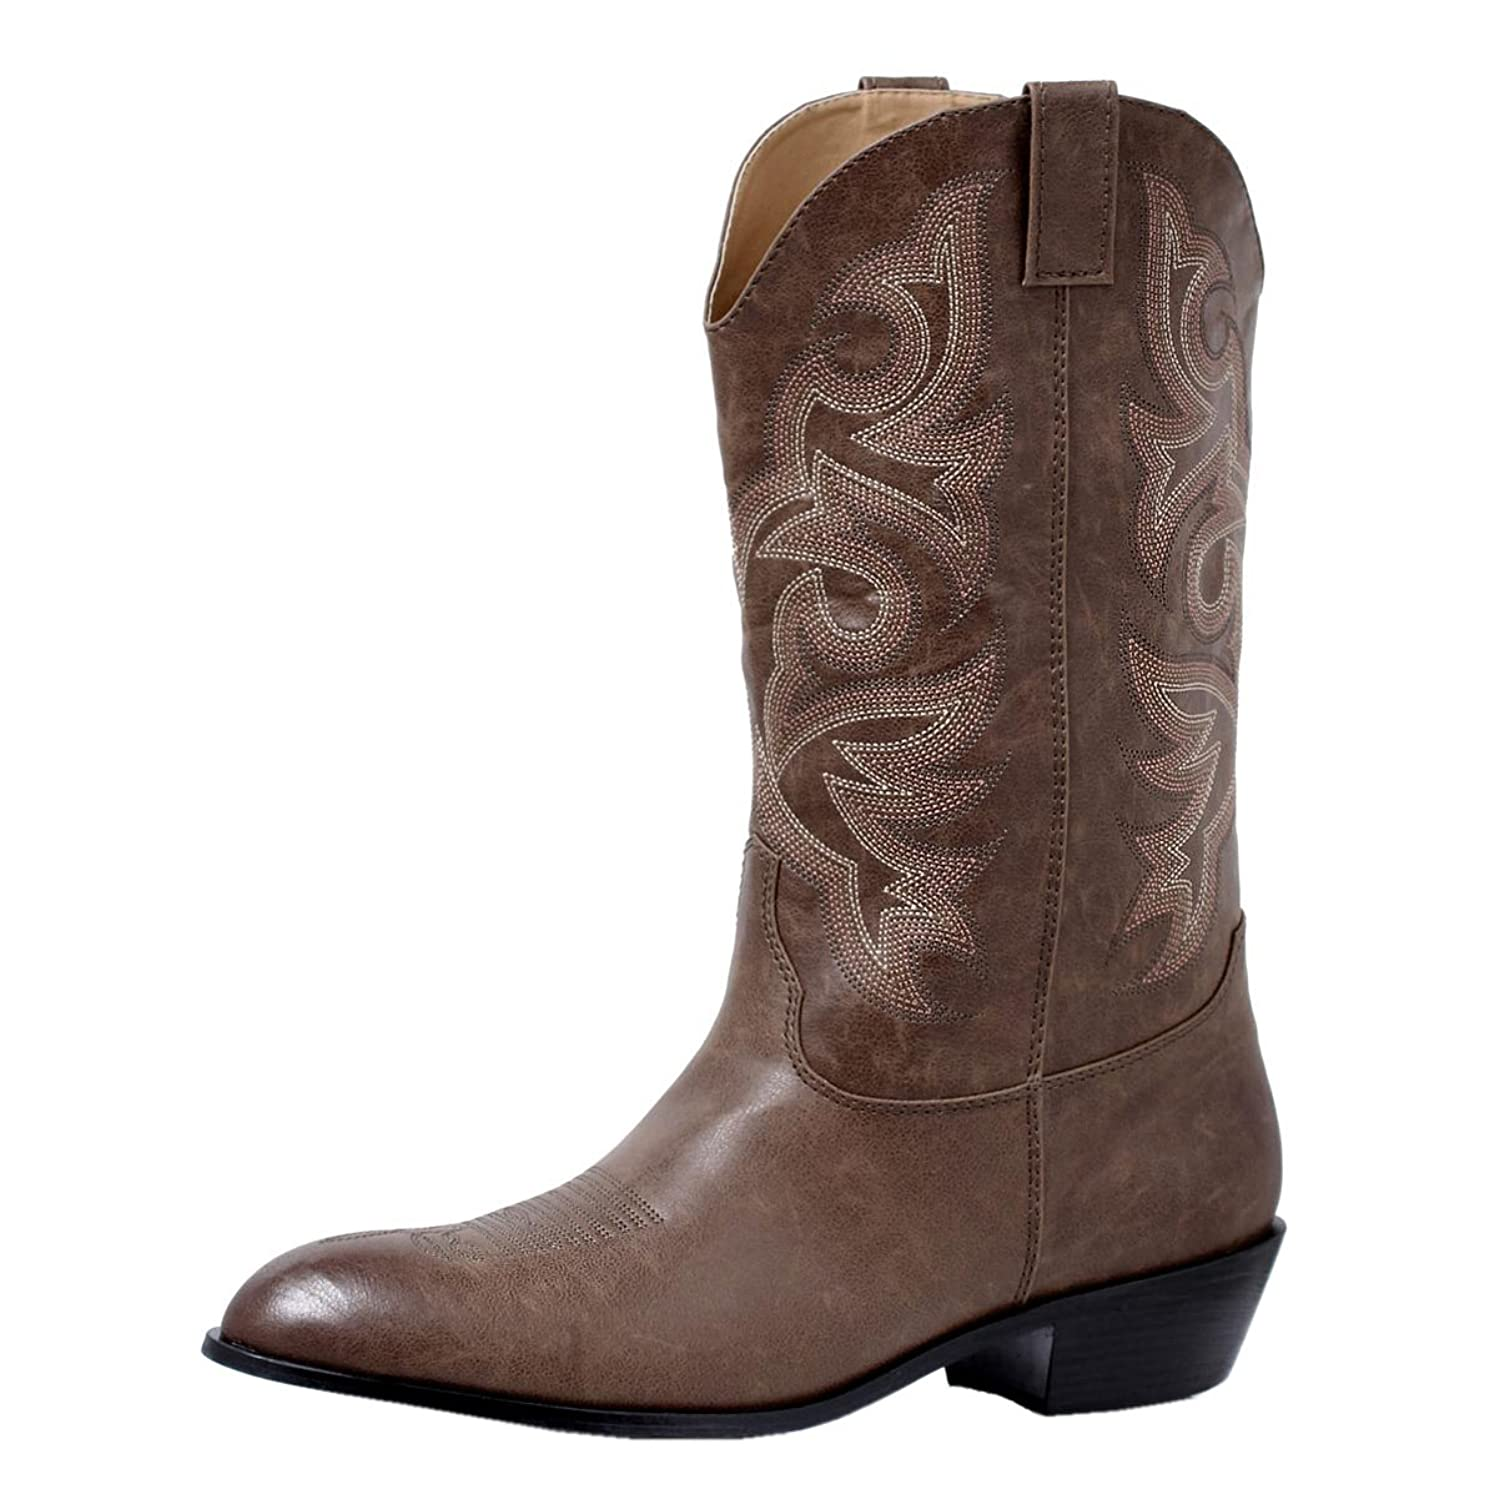 Men's Brown Cowboy Boots with Intricate Stitching Brown Western ...